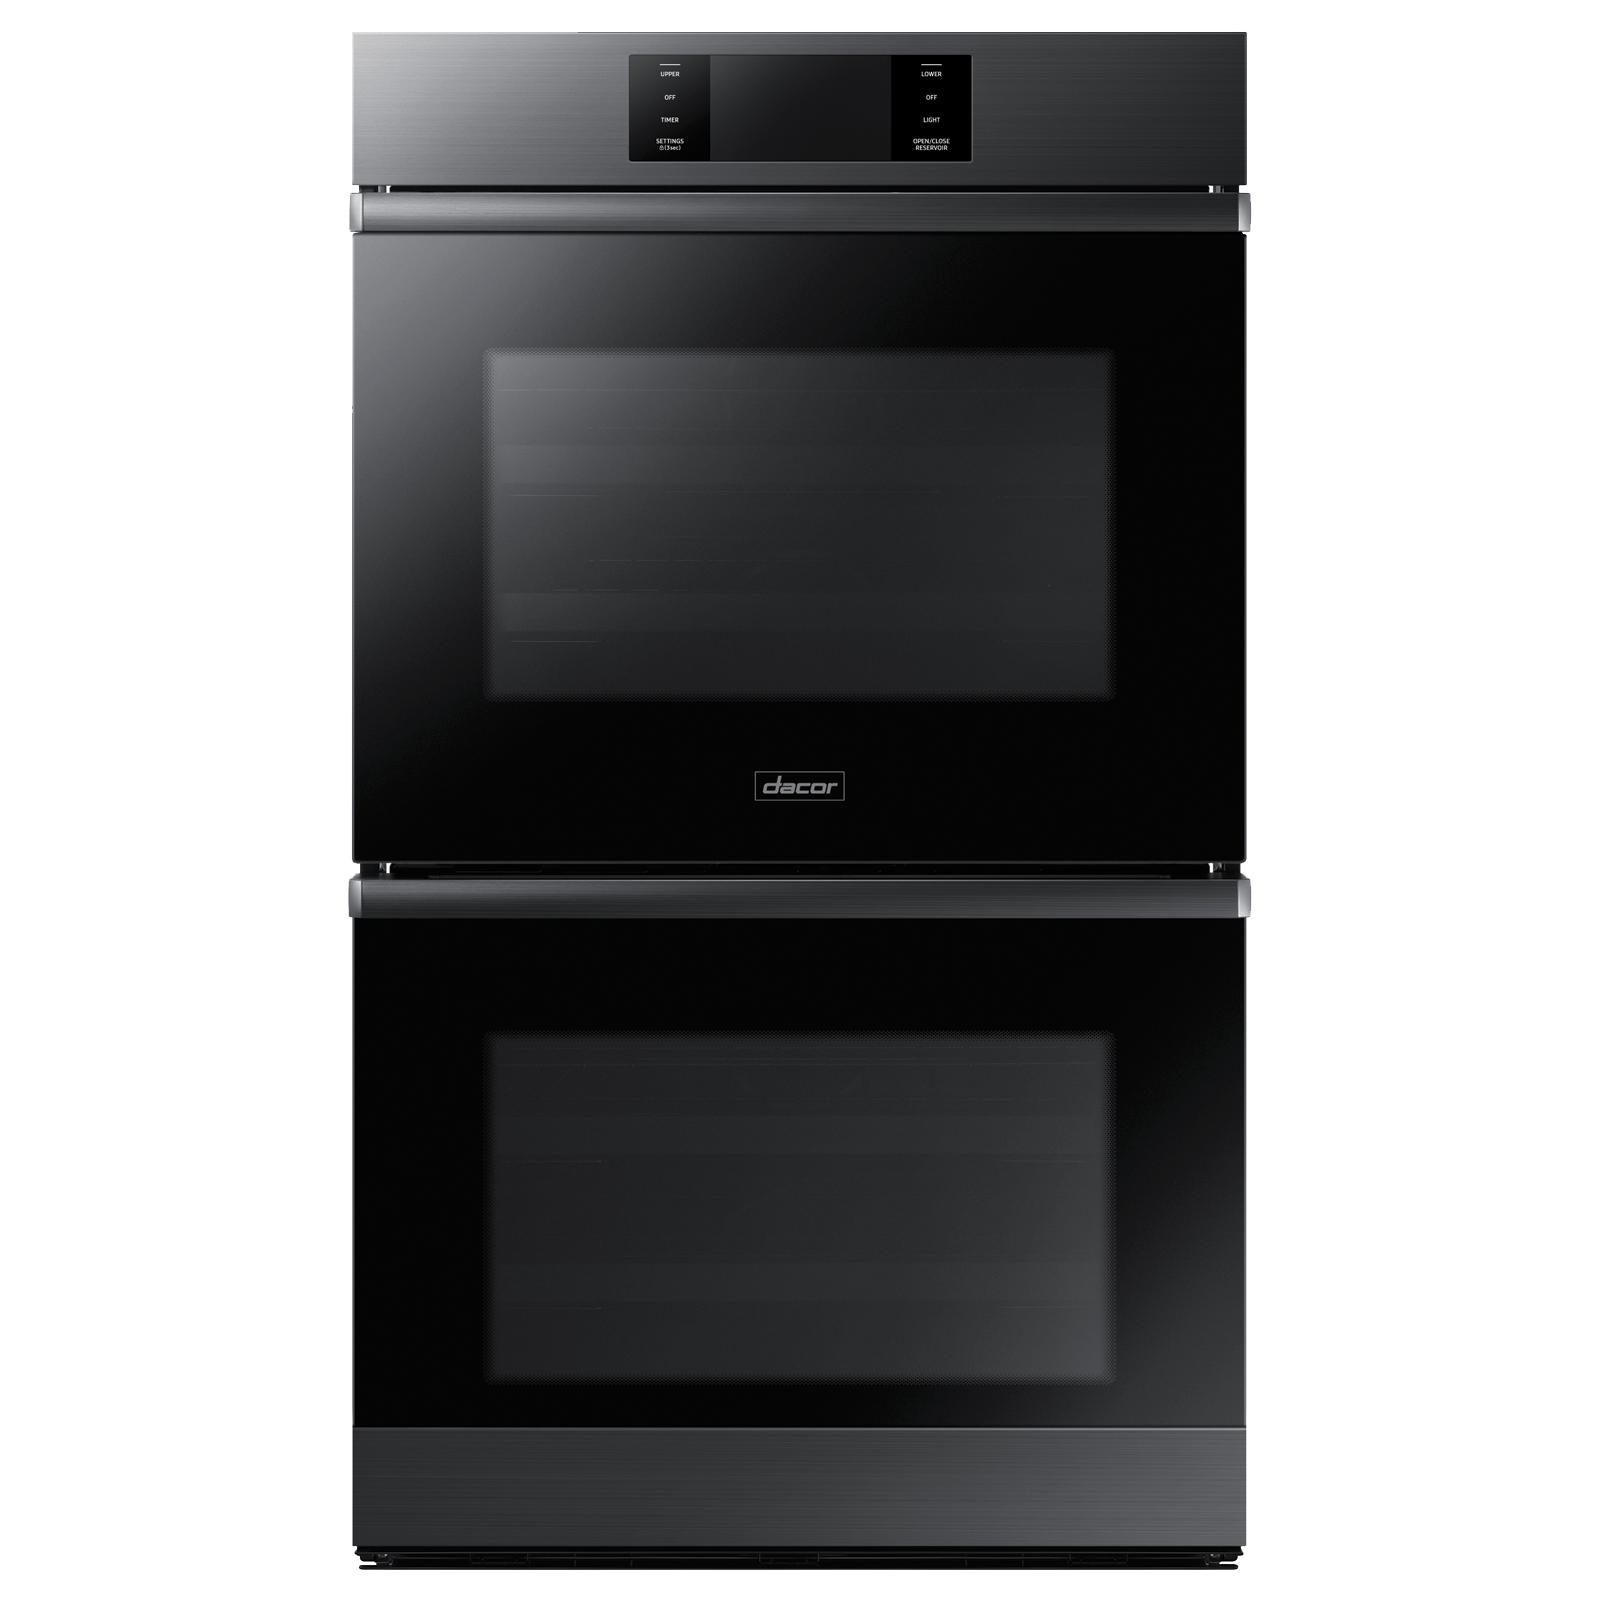 "Dacor Modernist 30"" Combi Wall Oven, Graphite Stainless Steel"